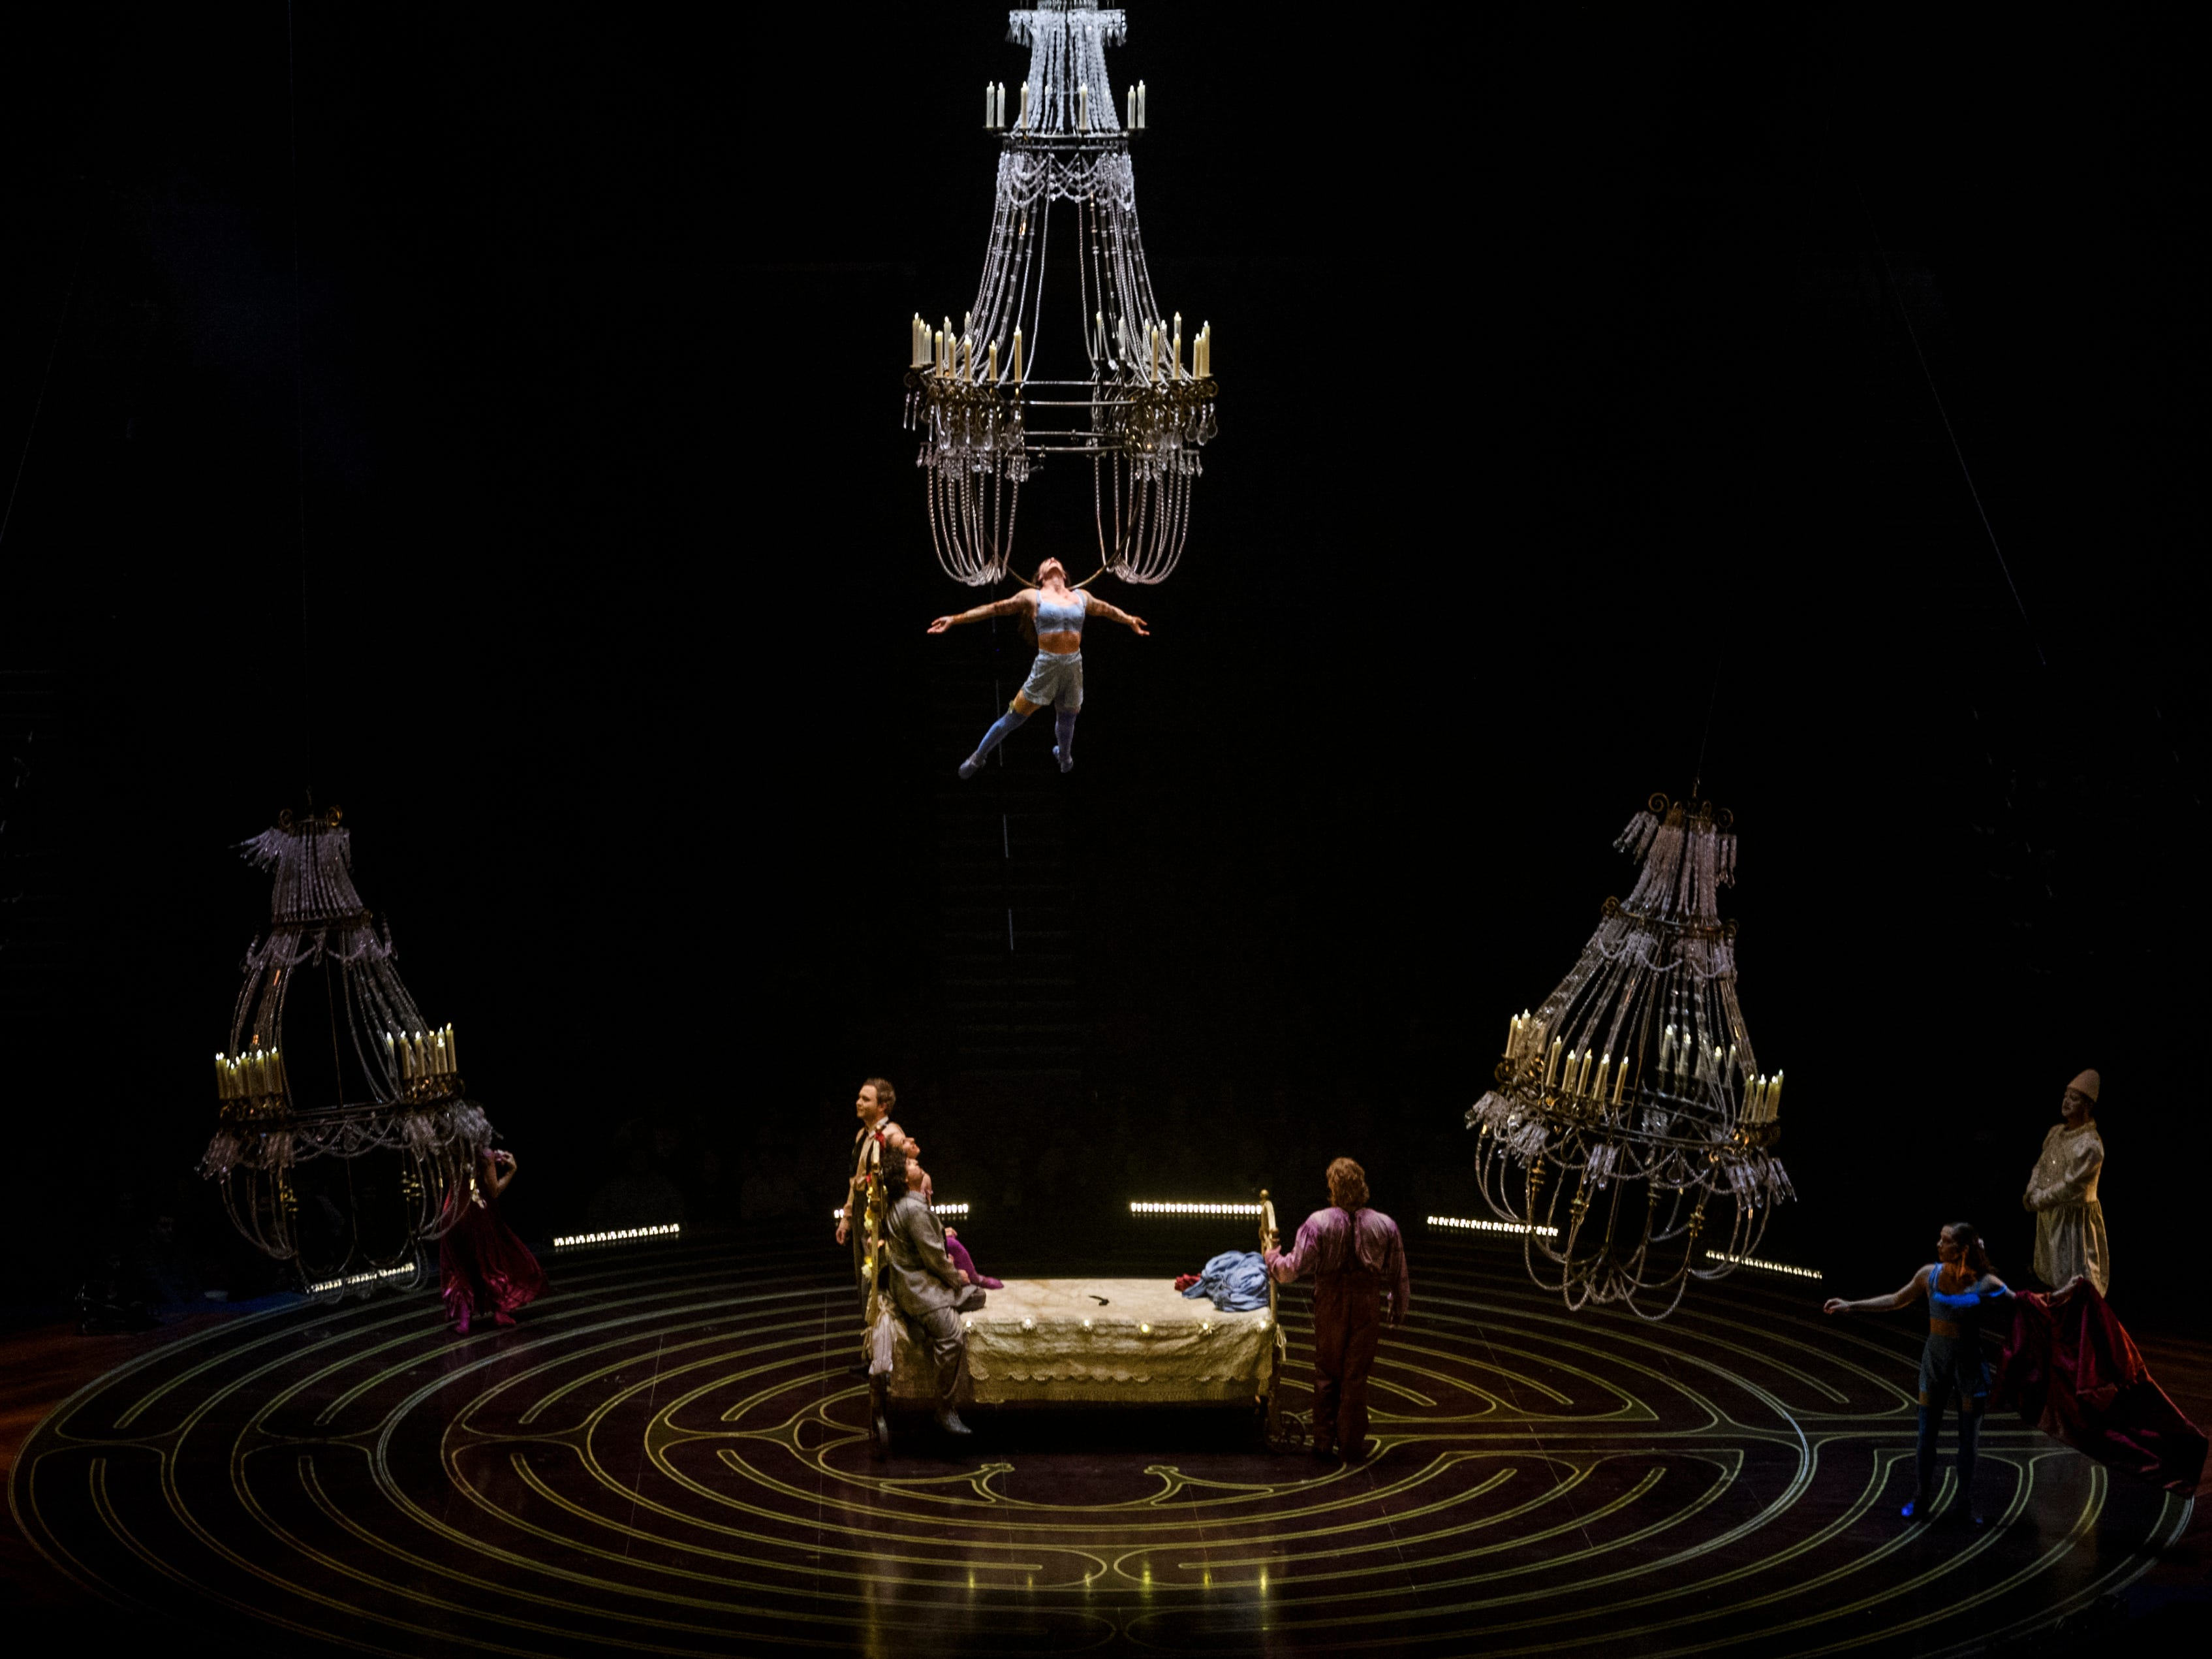 Erin Cervantes, top center, suspends from a giant chandelier above the stage during Cirque du Soleil's Corteo at Ford Center in Evansville, Ind., Wednesday night, Jan. 23, 2019. She plays one of four women who were Mauro the Dreamer Clown's former loves.